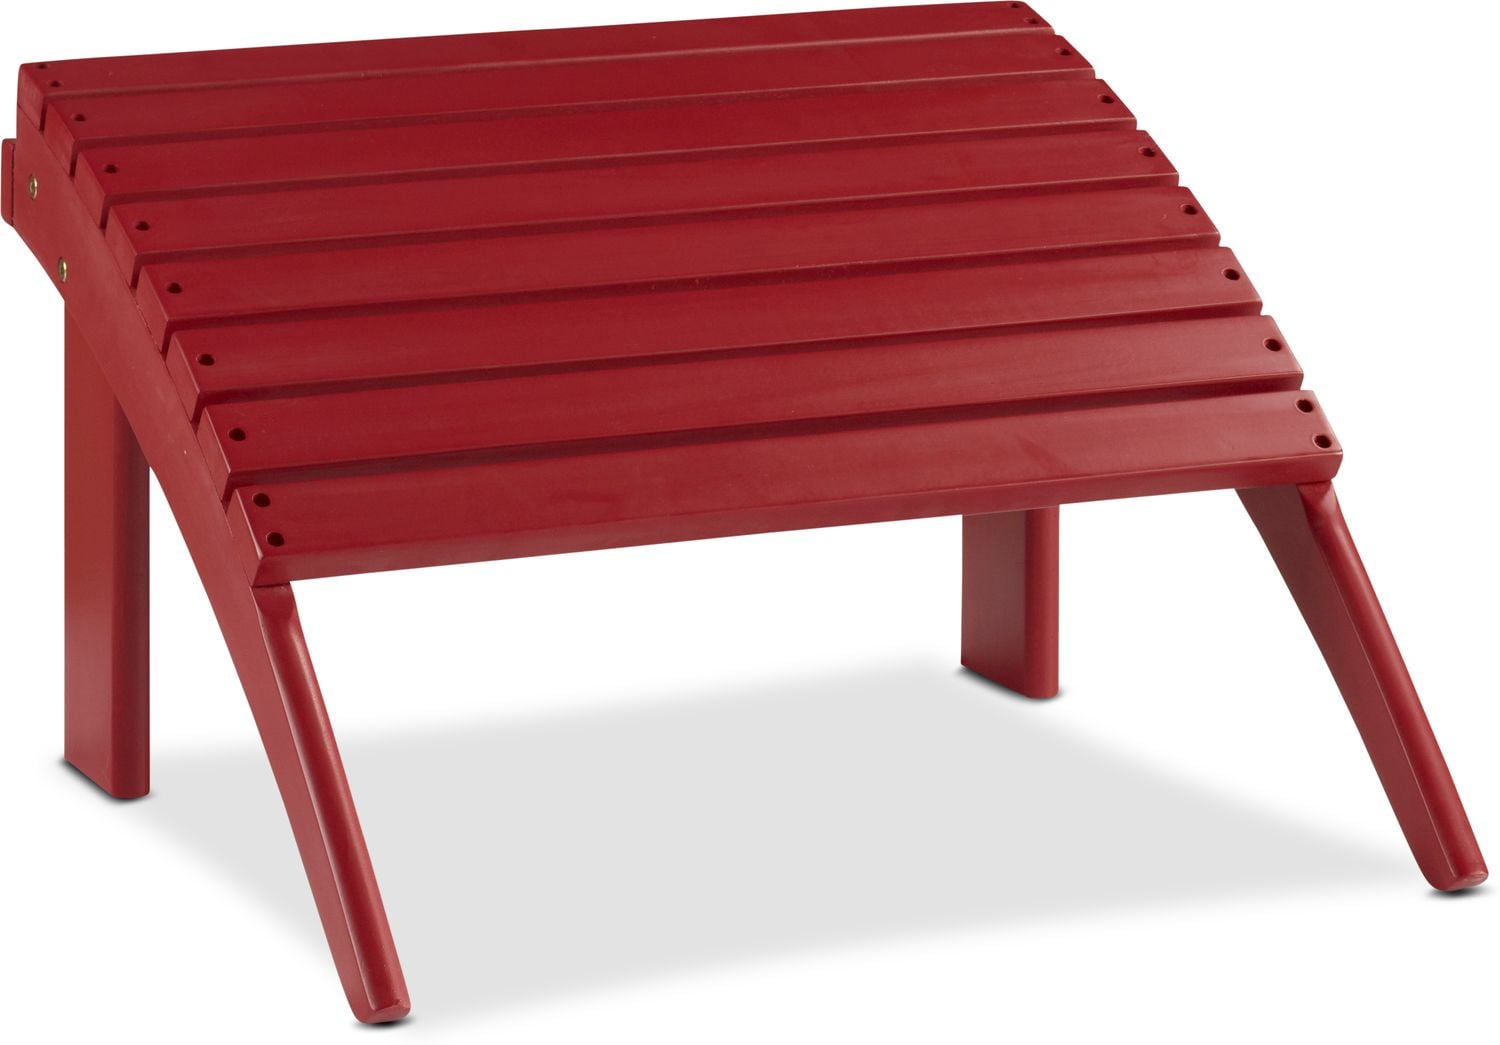 Outdoor Furniture - Hampton Beach Outdoor Adirondack Ottoman